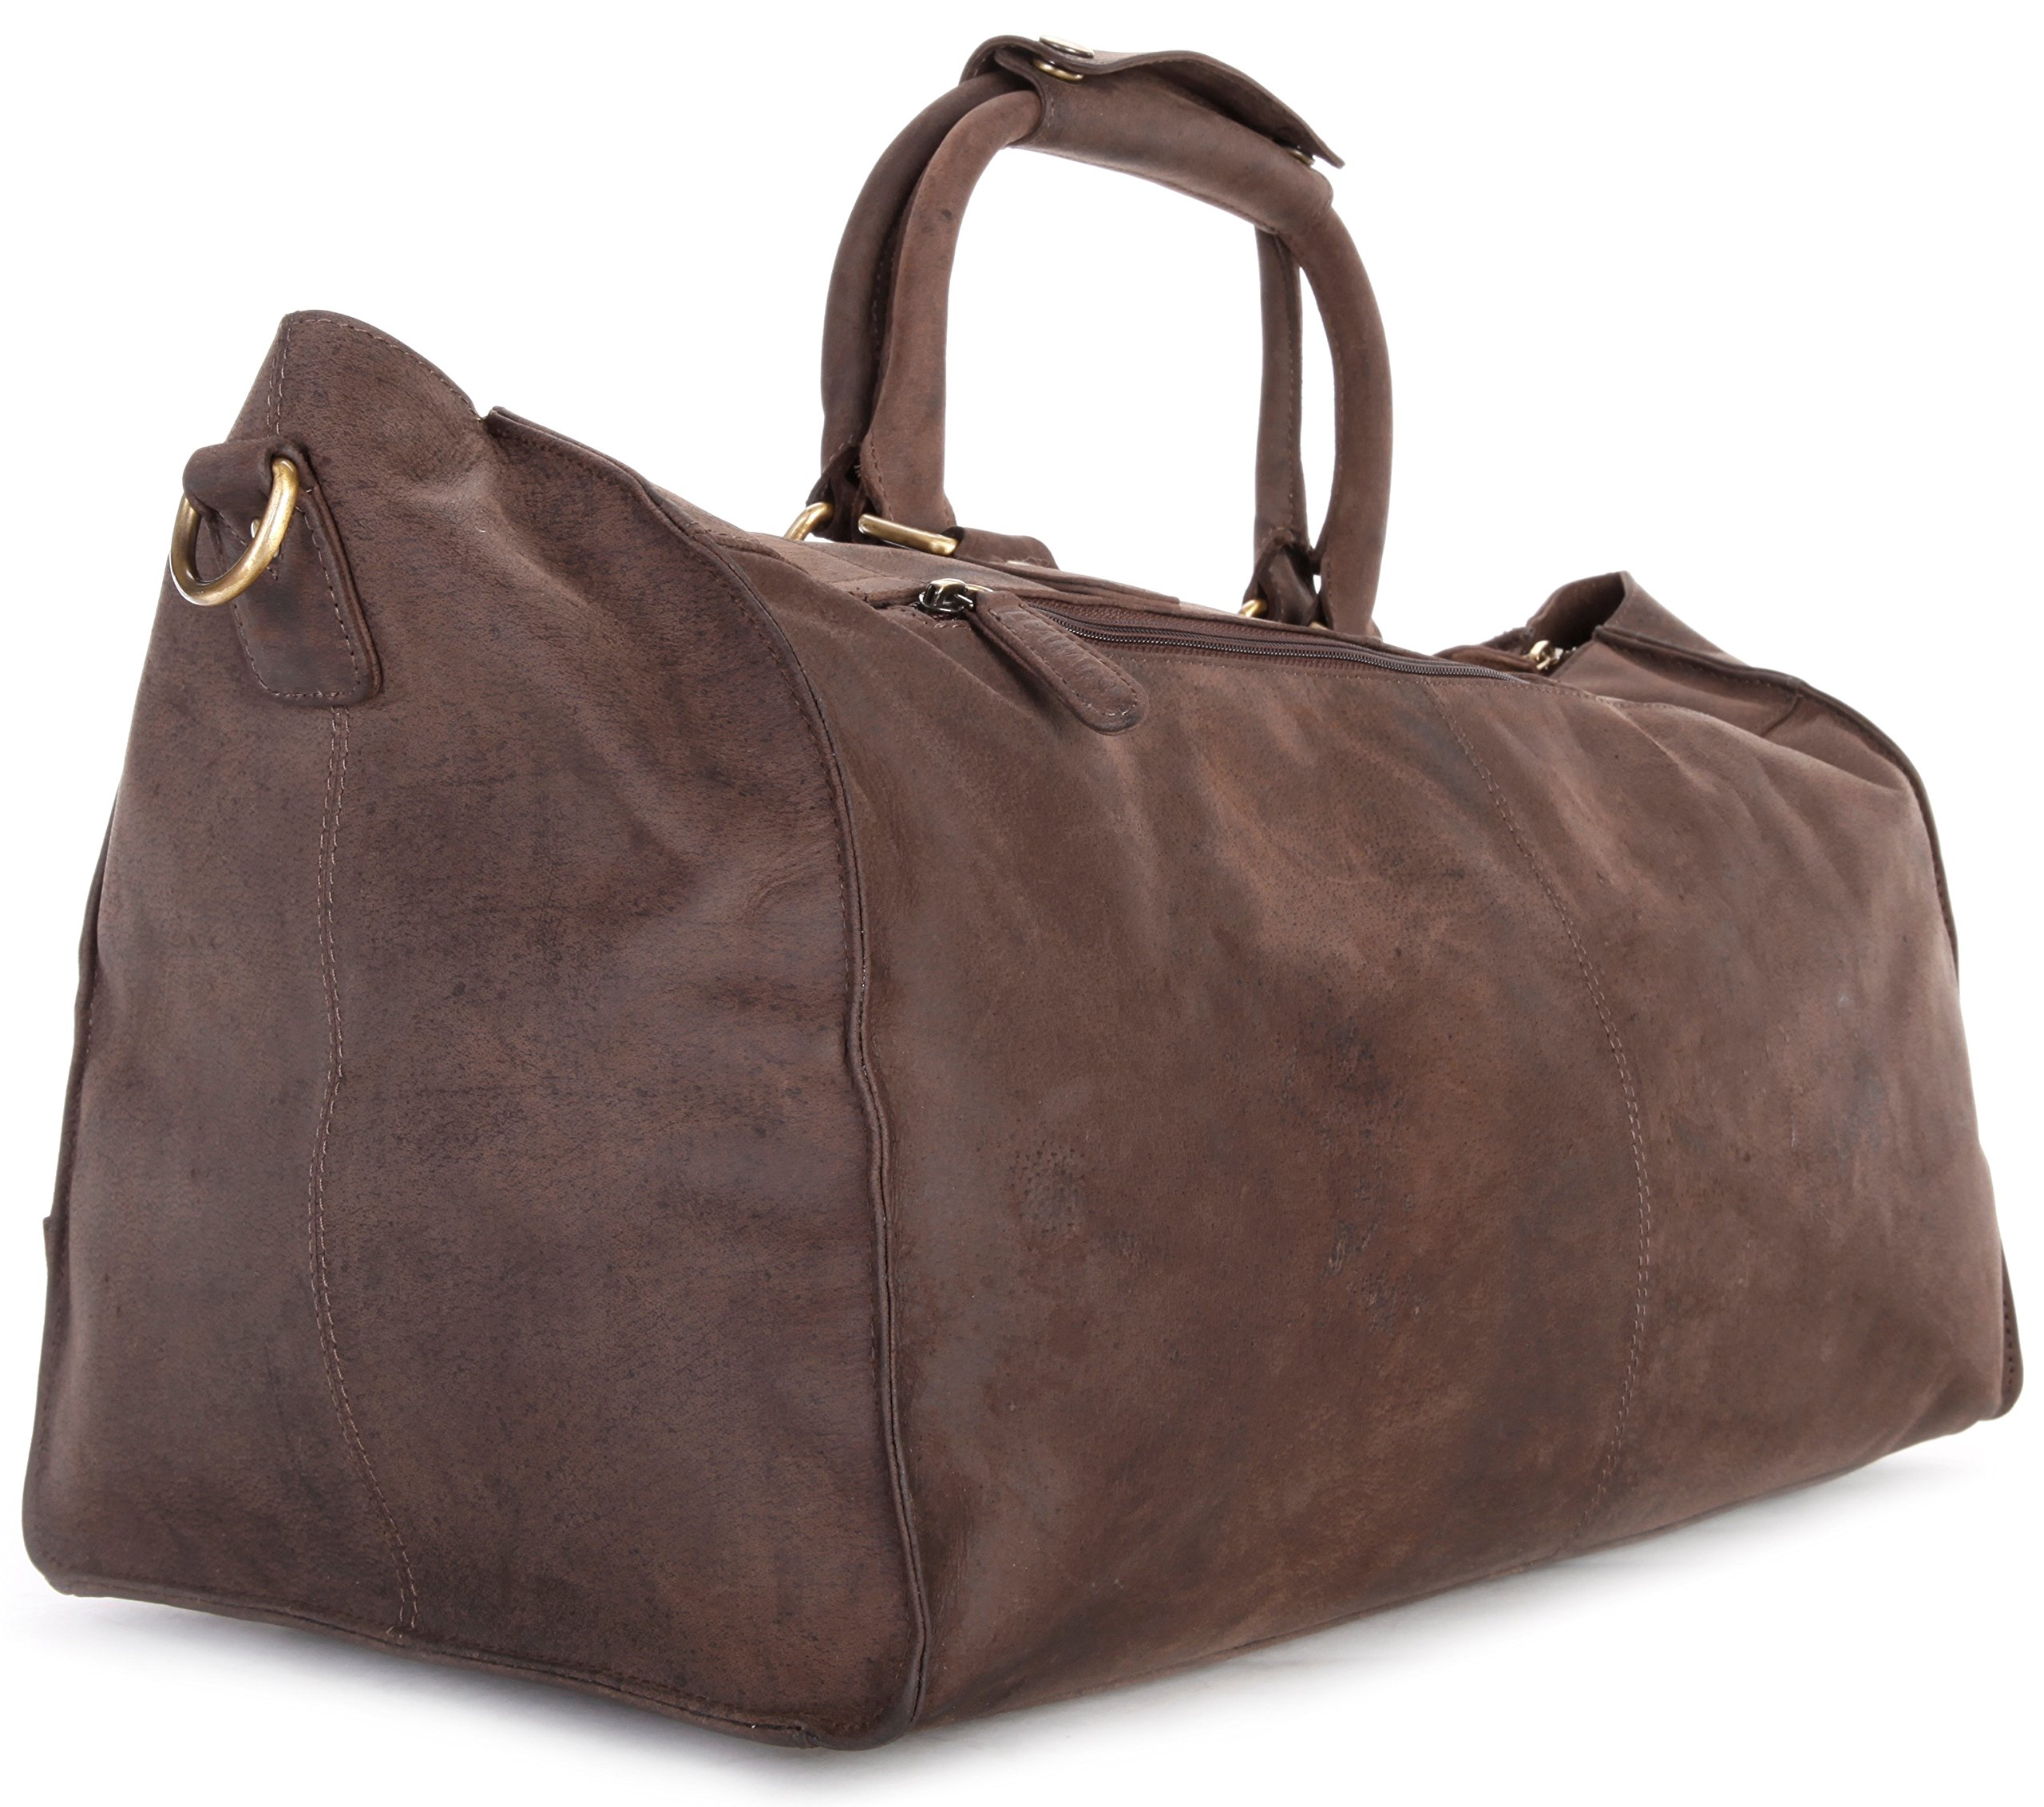 LEABAGS Durham genuine buffalo leather duffle bag in vintage style - Nutmeg by LEABAGS (Image #5)